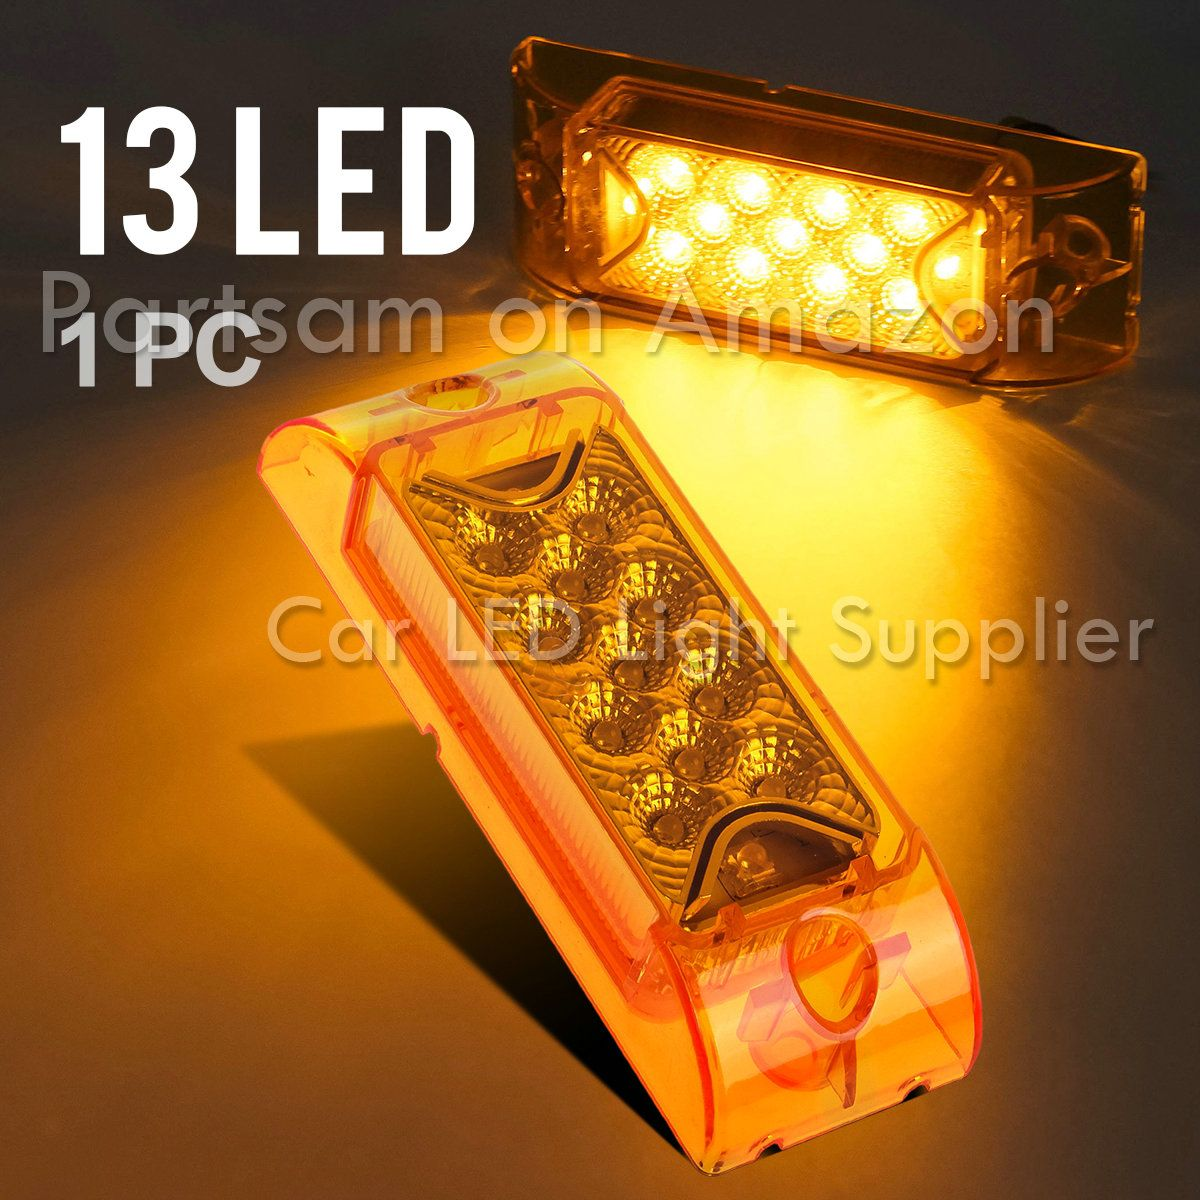 Partsam 2pcs Amber Led Rectangle Tail Stop Marker Light Trailer Truck Rv 3 Wires 21led 6 X 2 Led Rec Light Trailer Car Led Lights Car Parts And Accessories